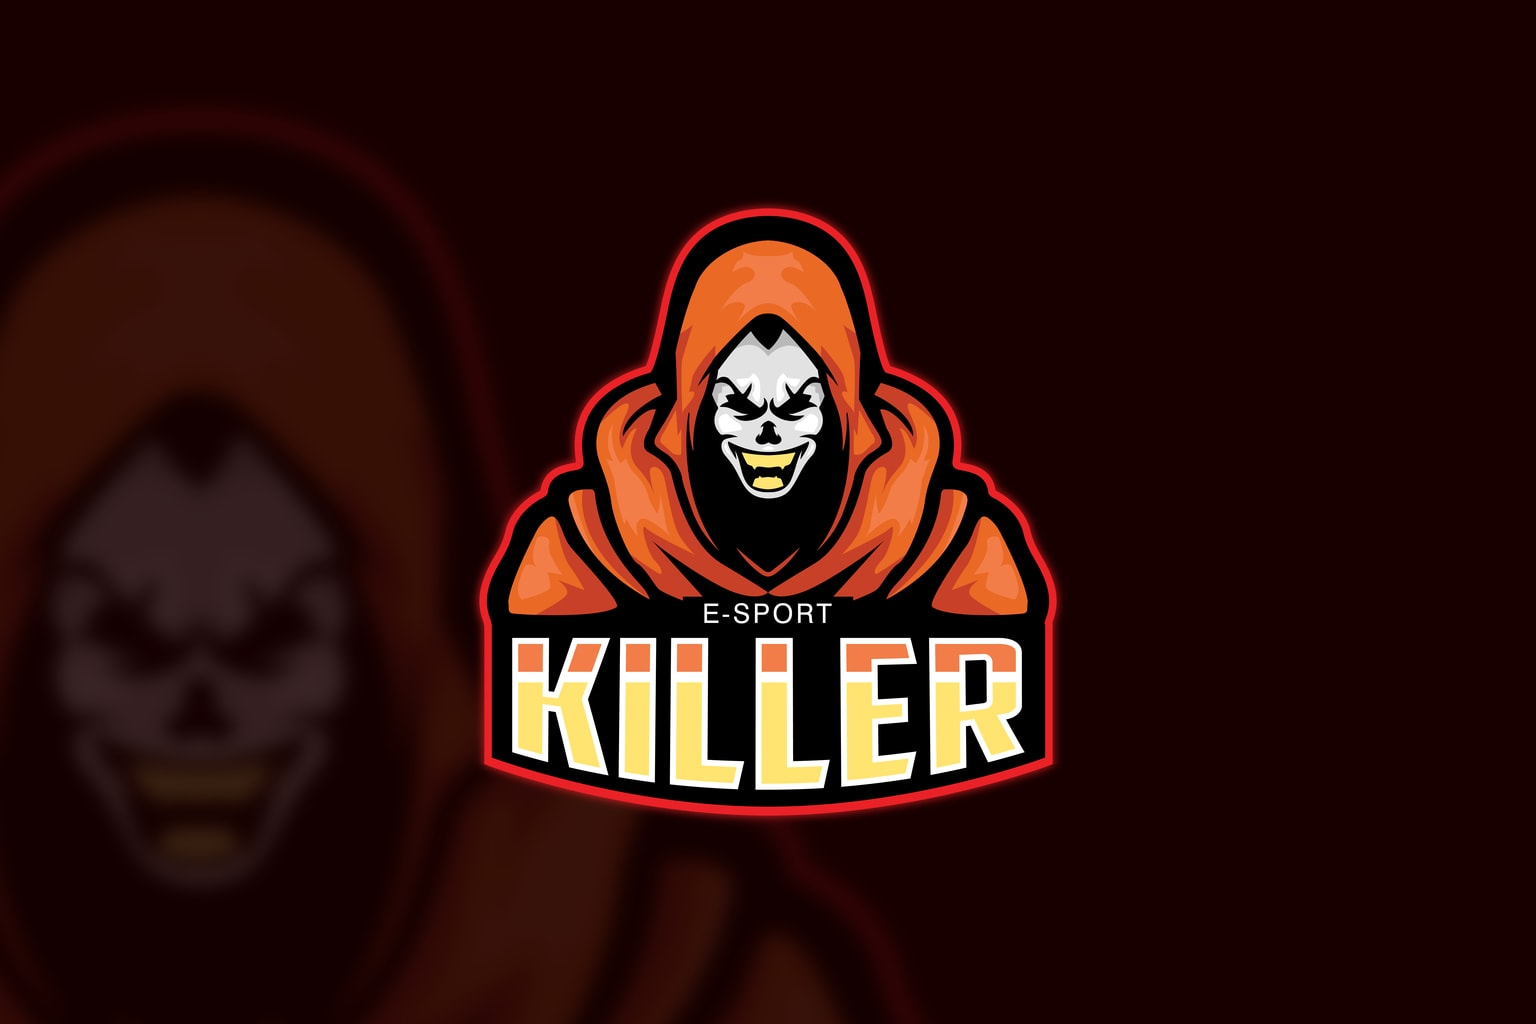 esport logo killer figure